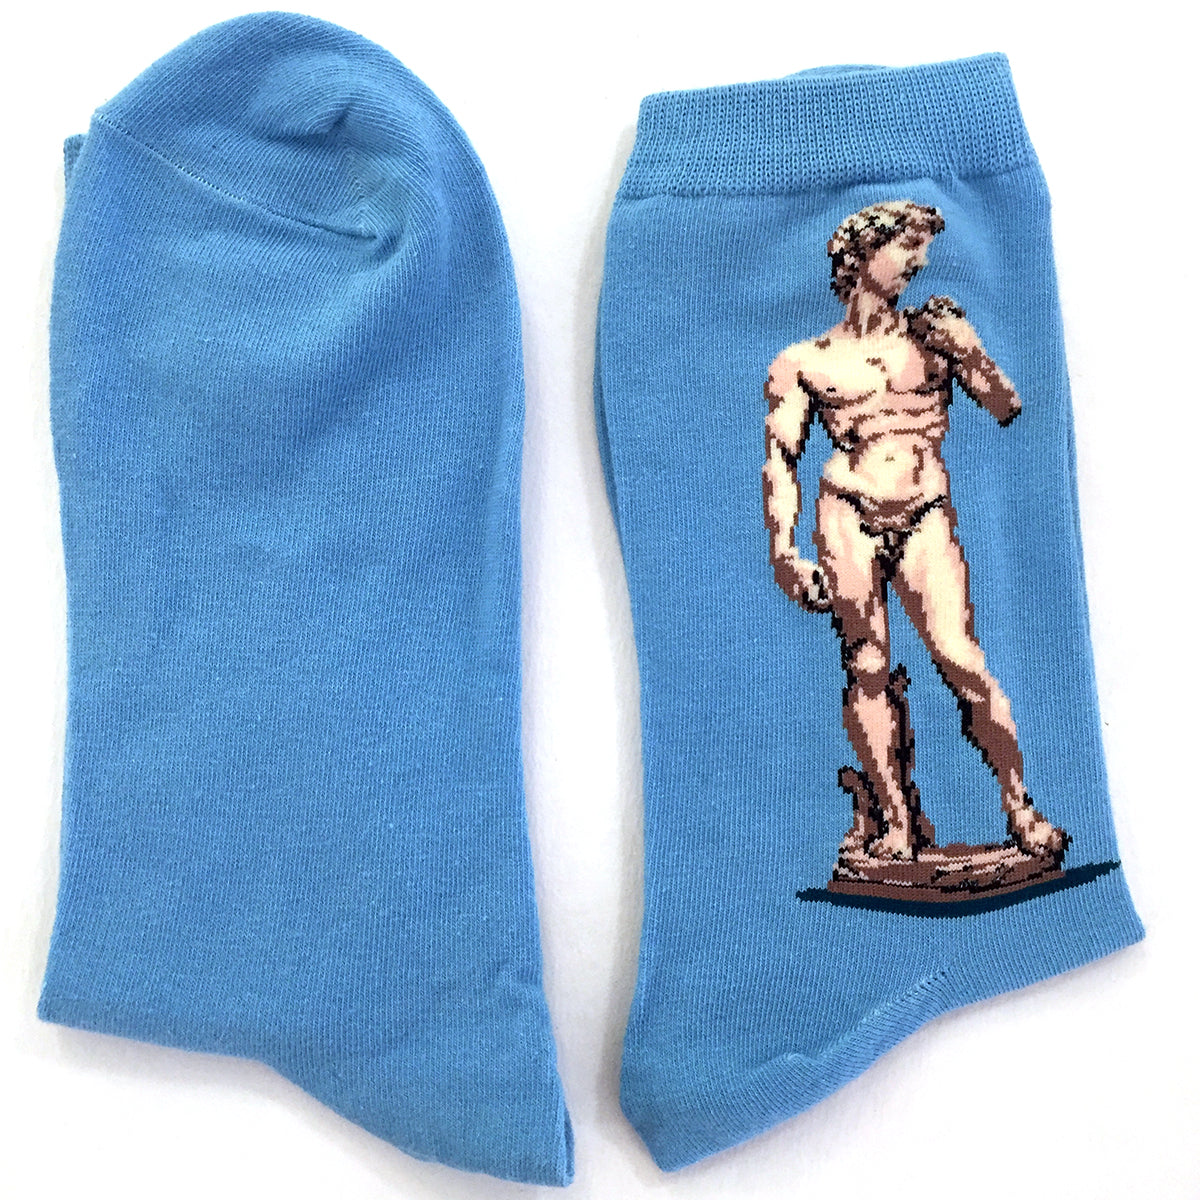 Socks - Statue of David